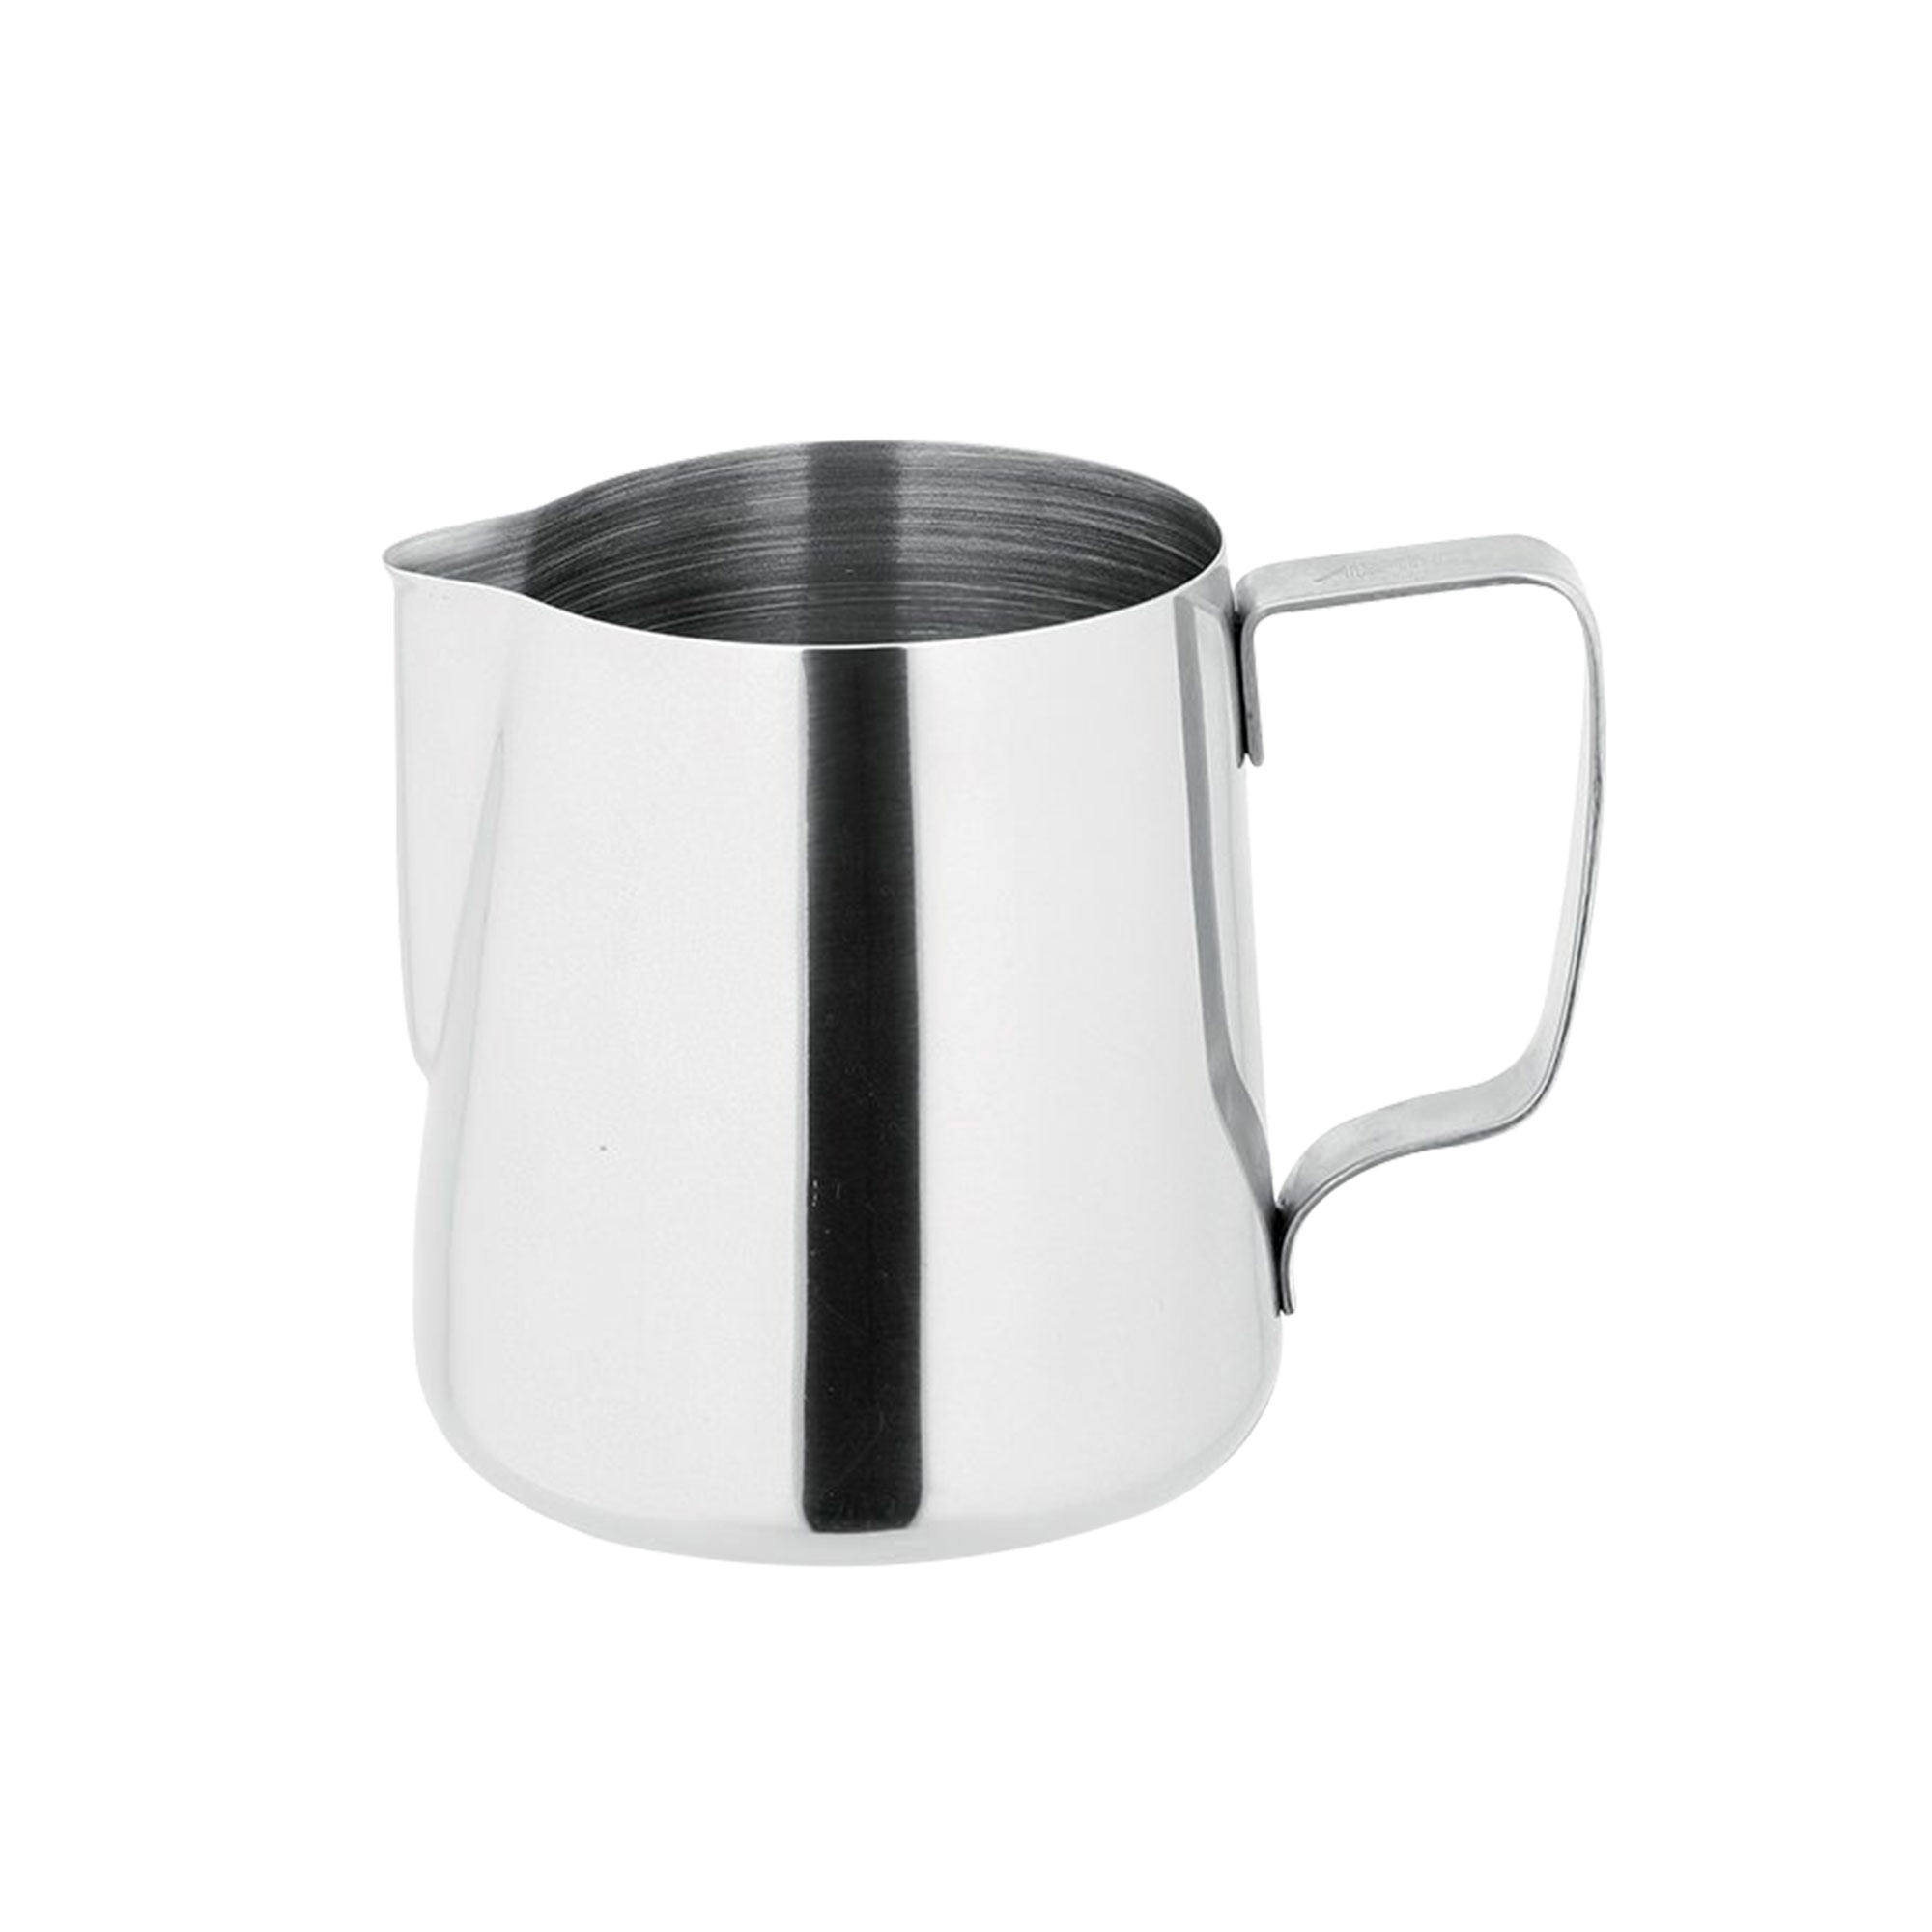 Avanti Milk Frothing Jug 300ml